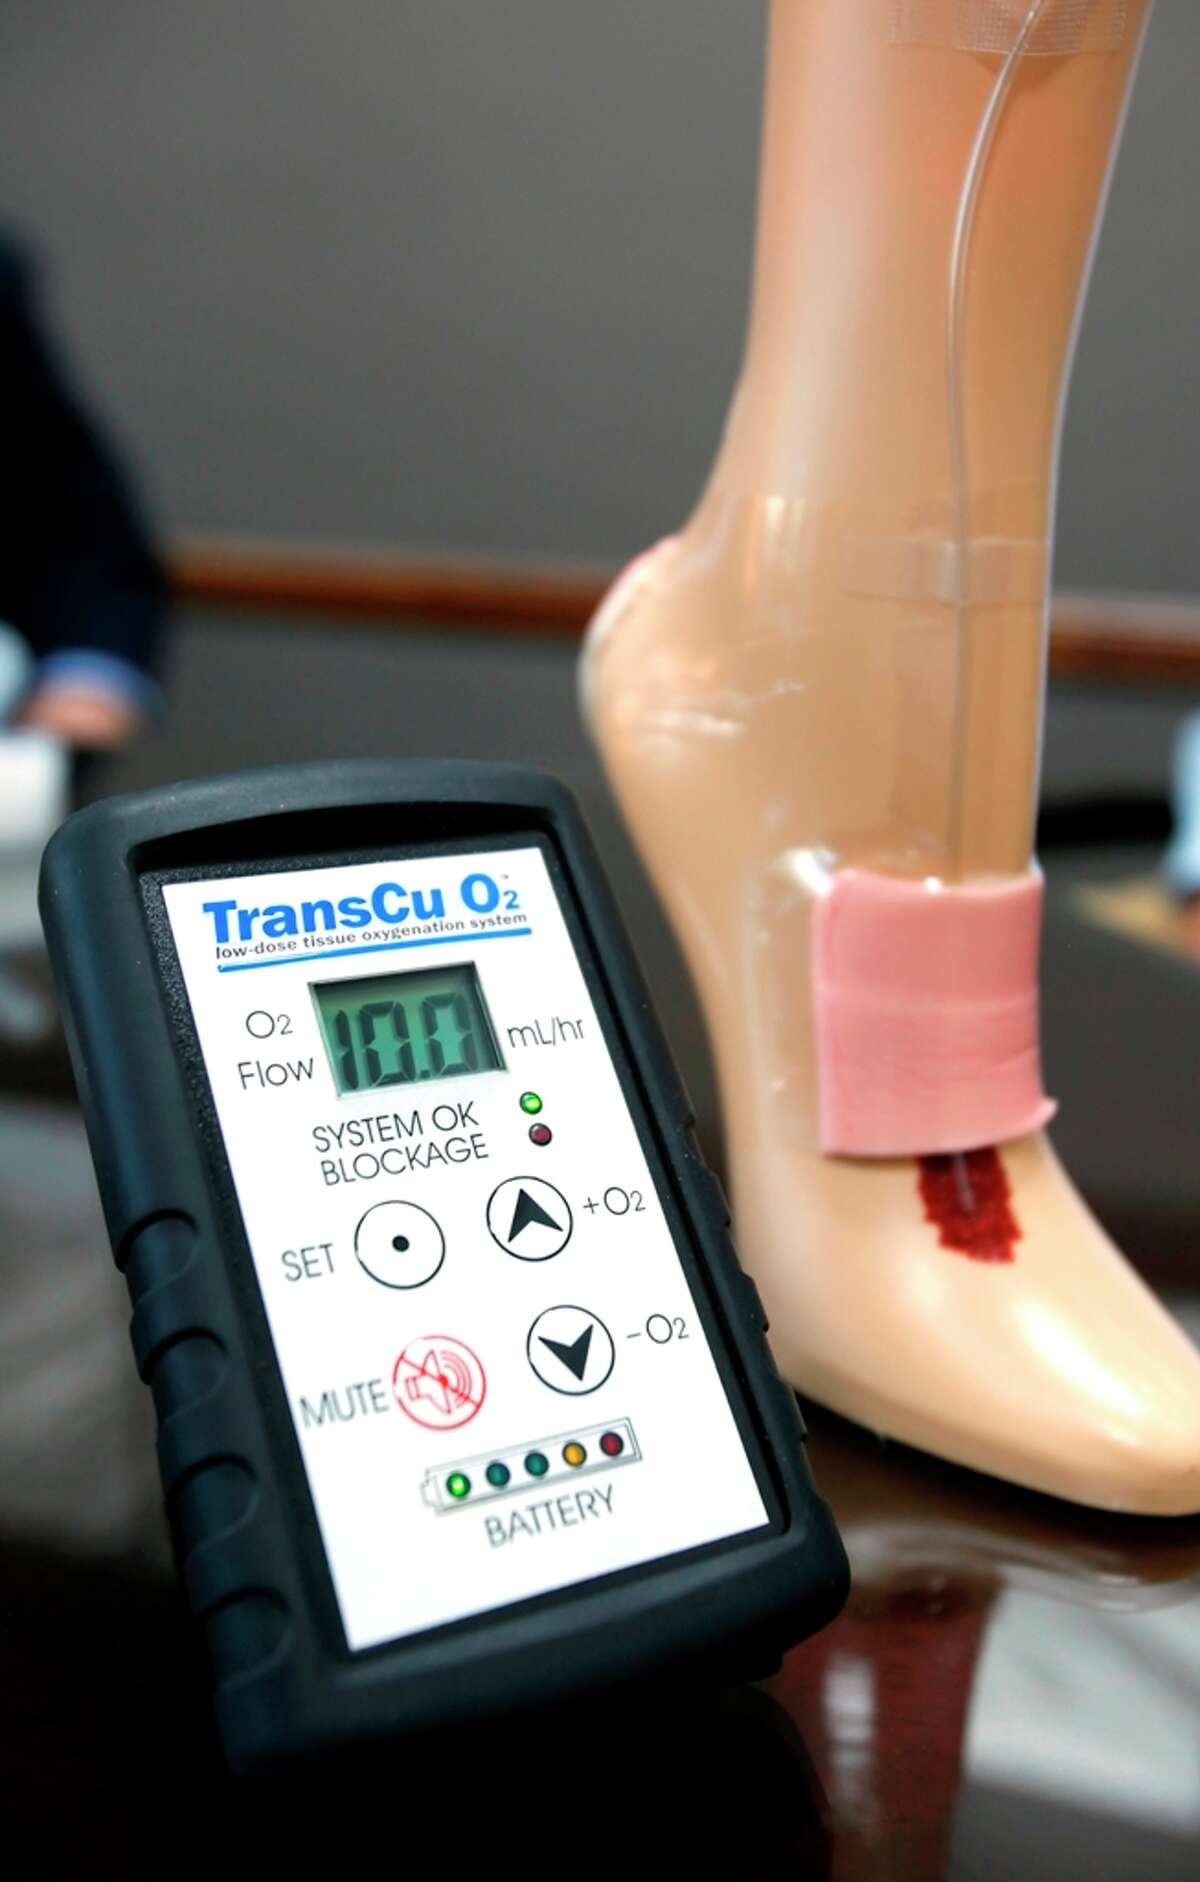 EO2 Concepts' TransCu O2 tissue oxygenation and would treatment system is seen in the company's San Antonio headquarters next to a foot showing a cut-away view of how the oxygenation system is applied to a wound.